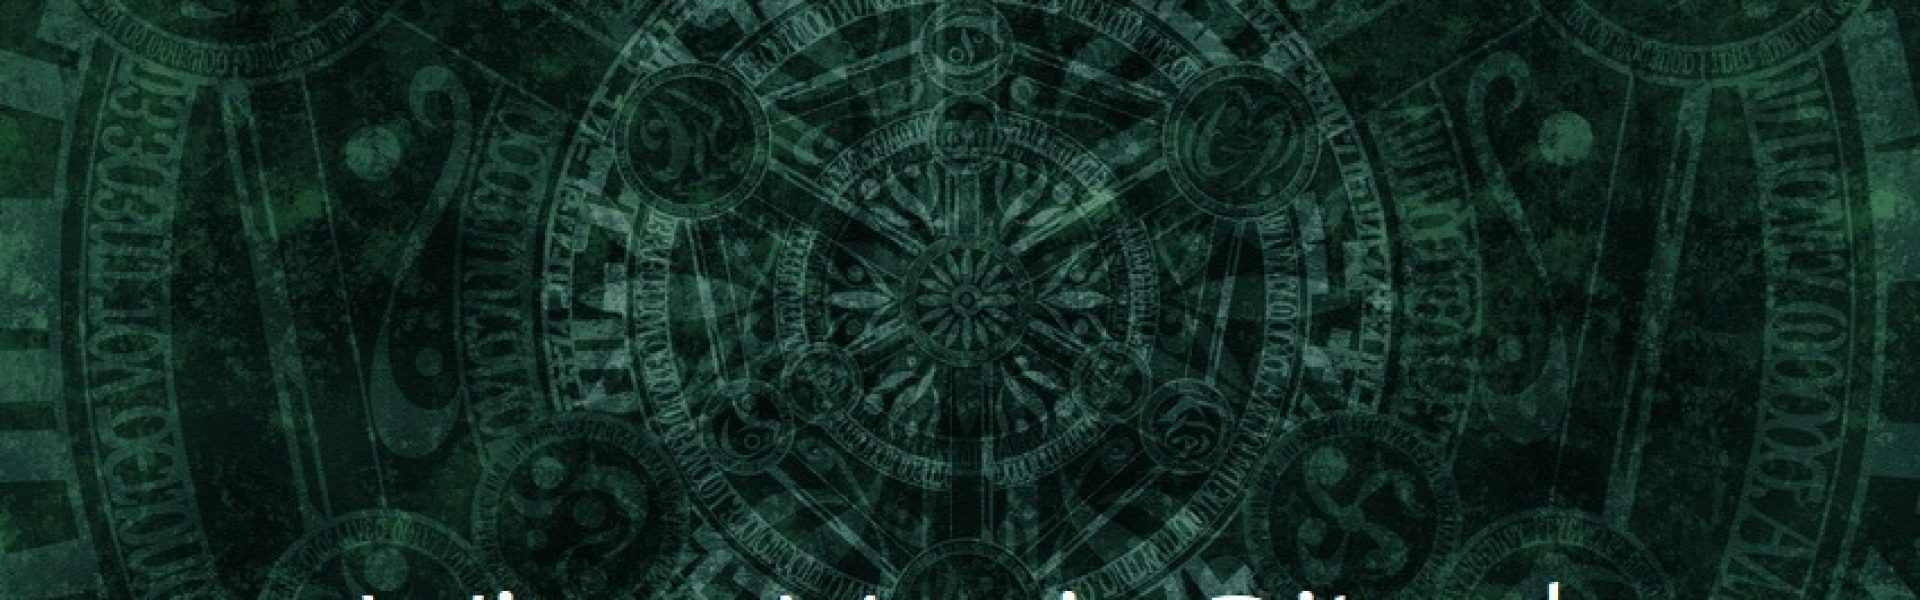 Esoteric background. Backdrop design of sacred symbols, signs, geometry and designs to provide supporting element for illustrations on magic, ritual, astrology, alchemy, witchcraft and fortune telling